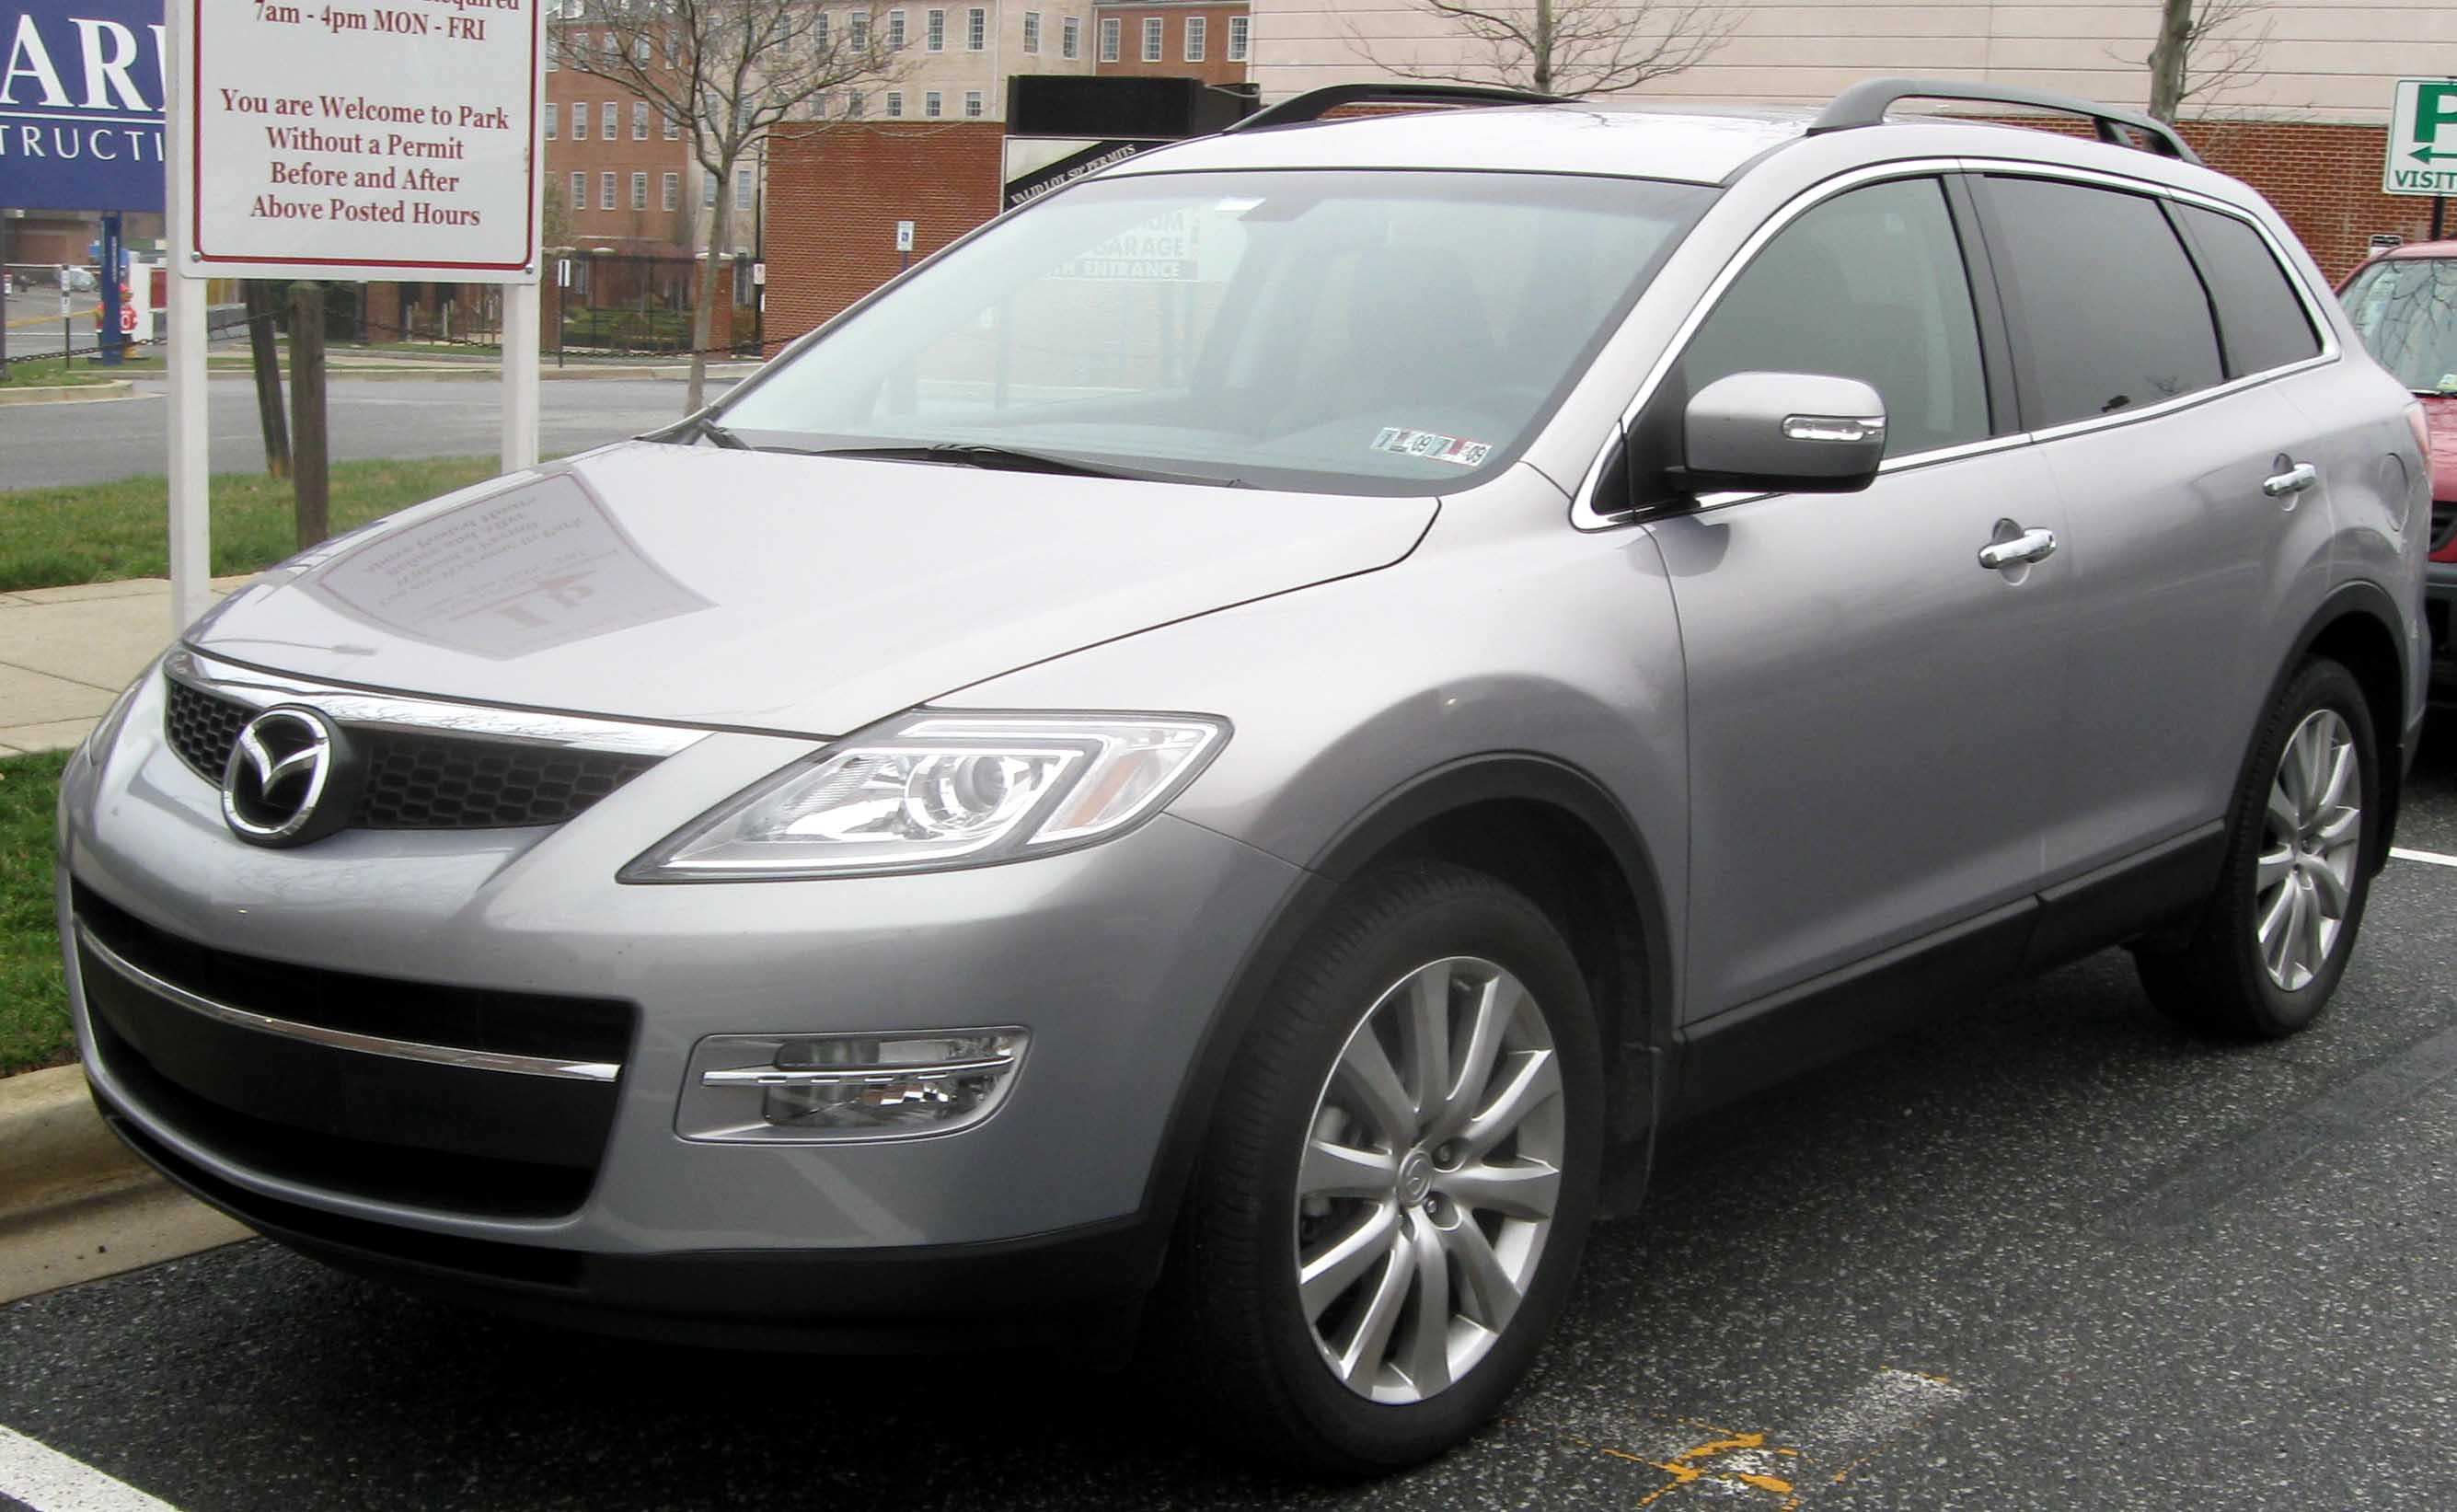 mazda cx 9 reviews mazda cx 9 car reviews. Black Bedroom Furniture Sets. Home Design Ideas